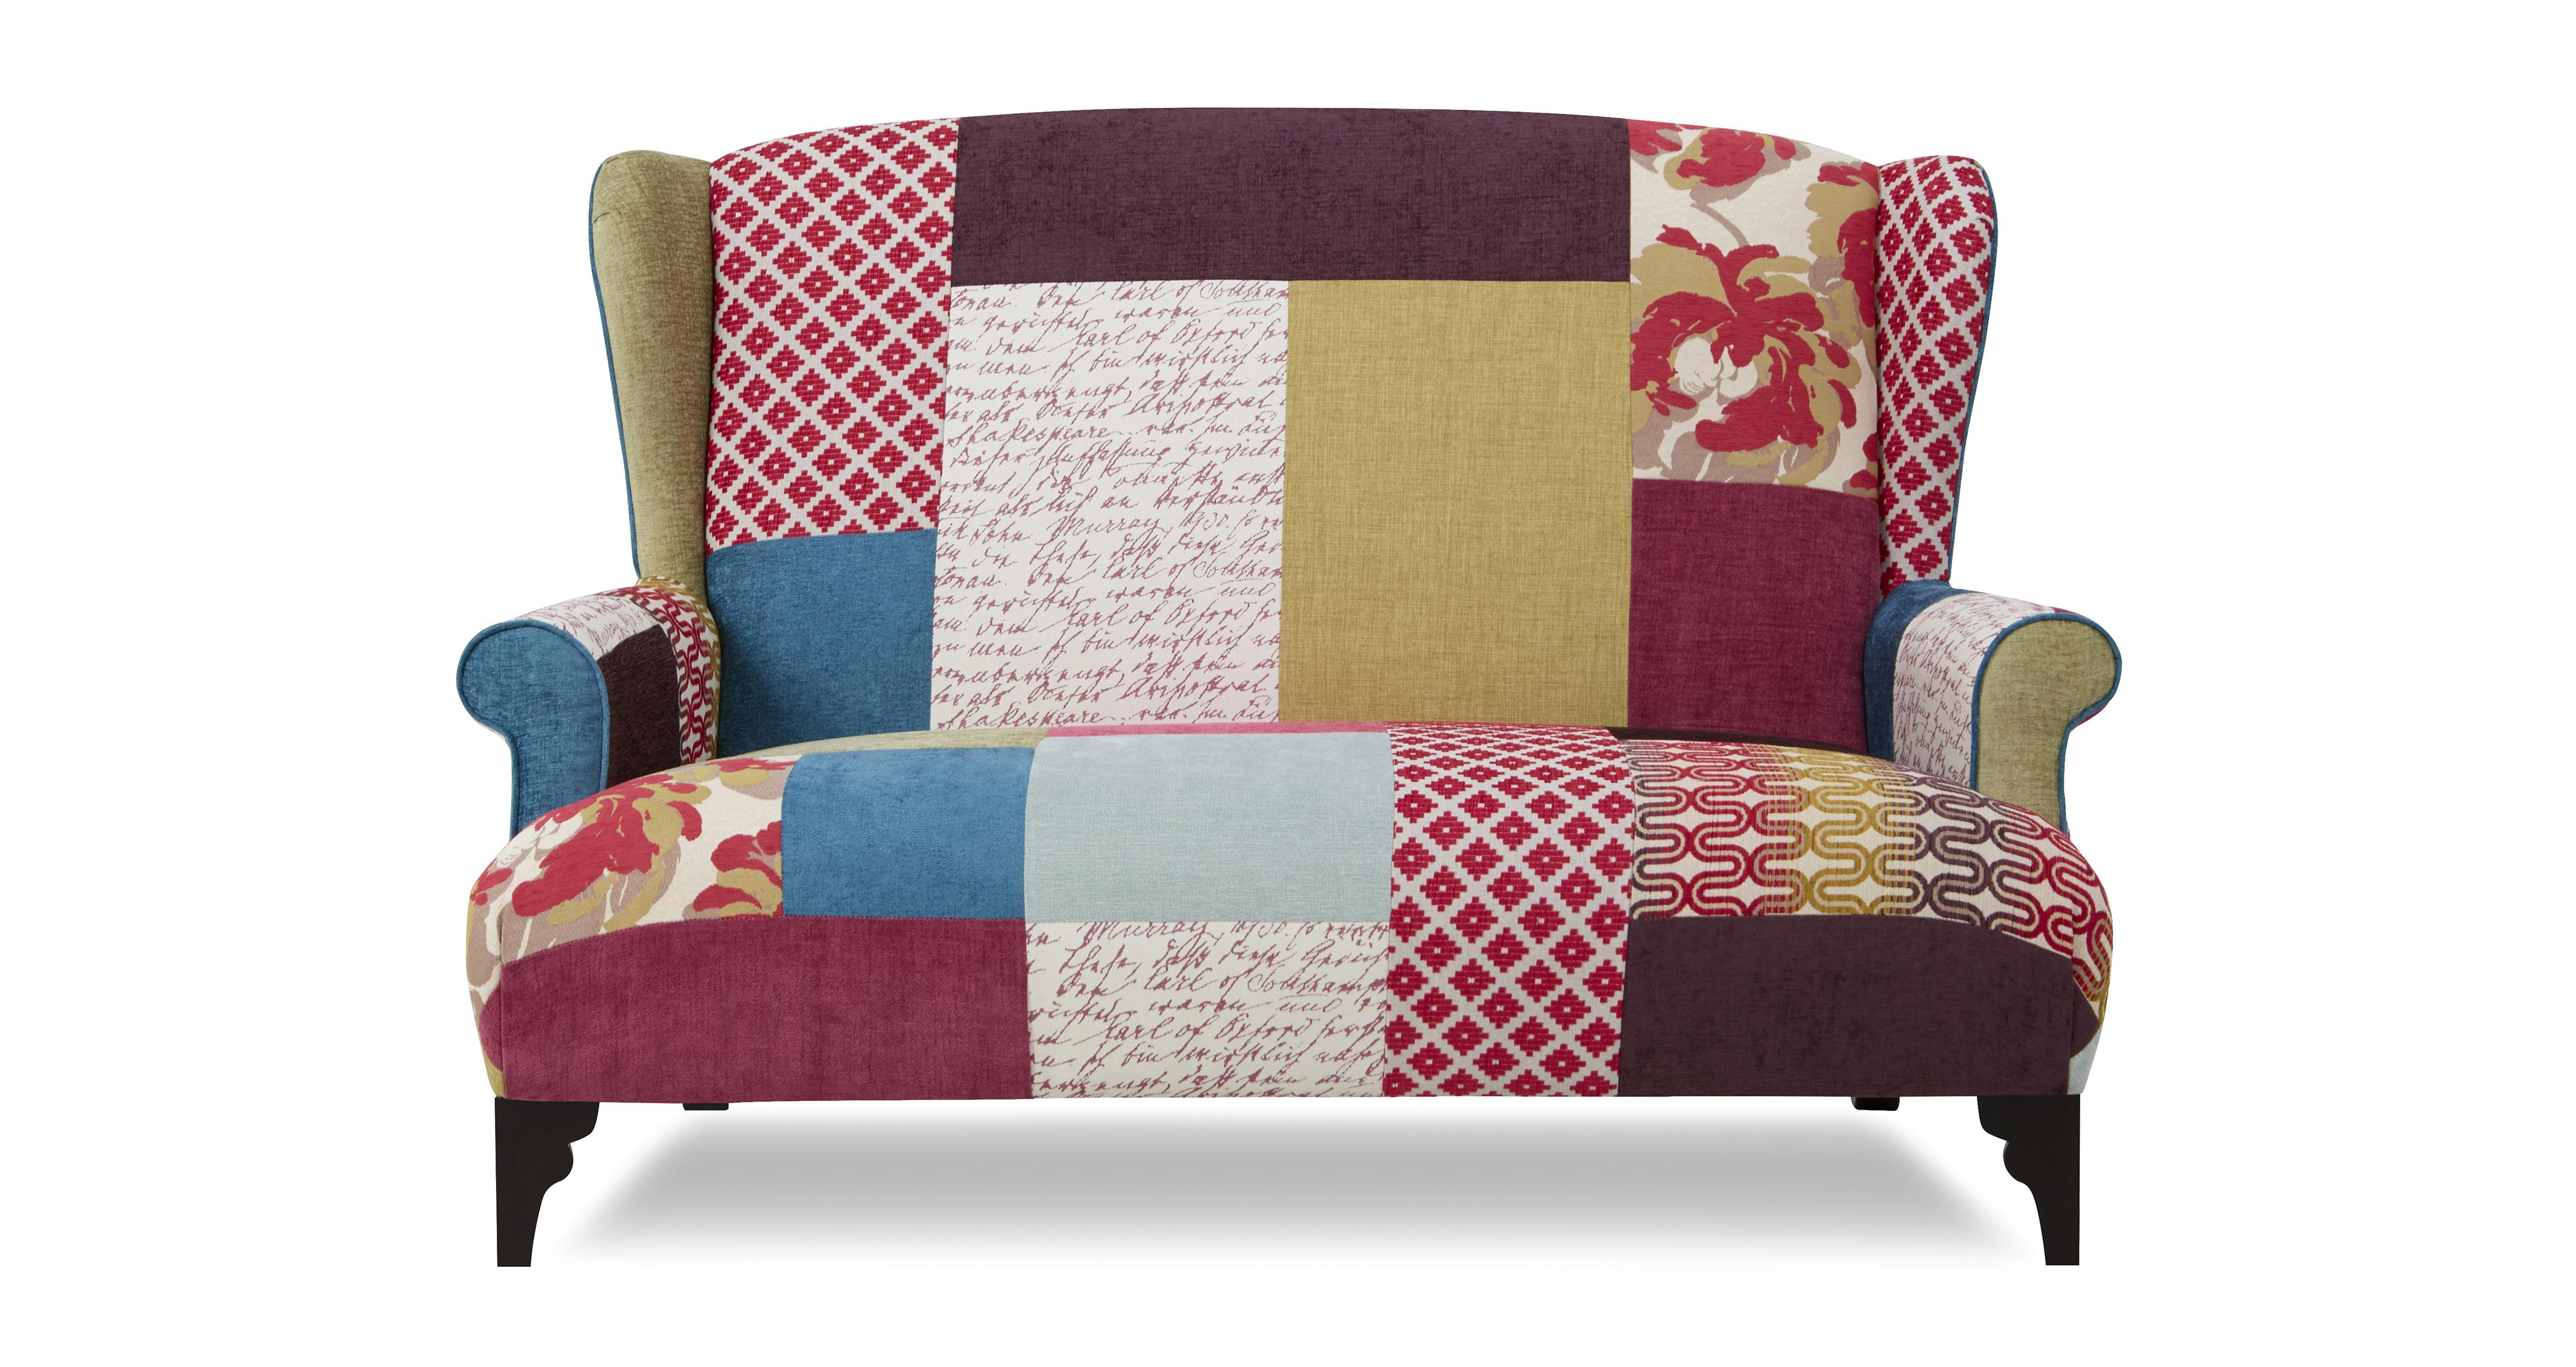 Patchwork sofa dfs for Patchwork couch